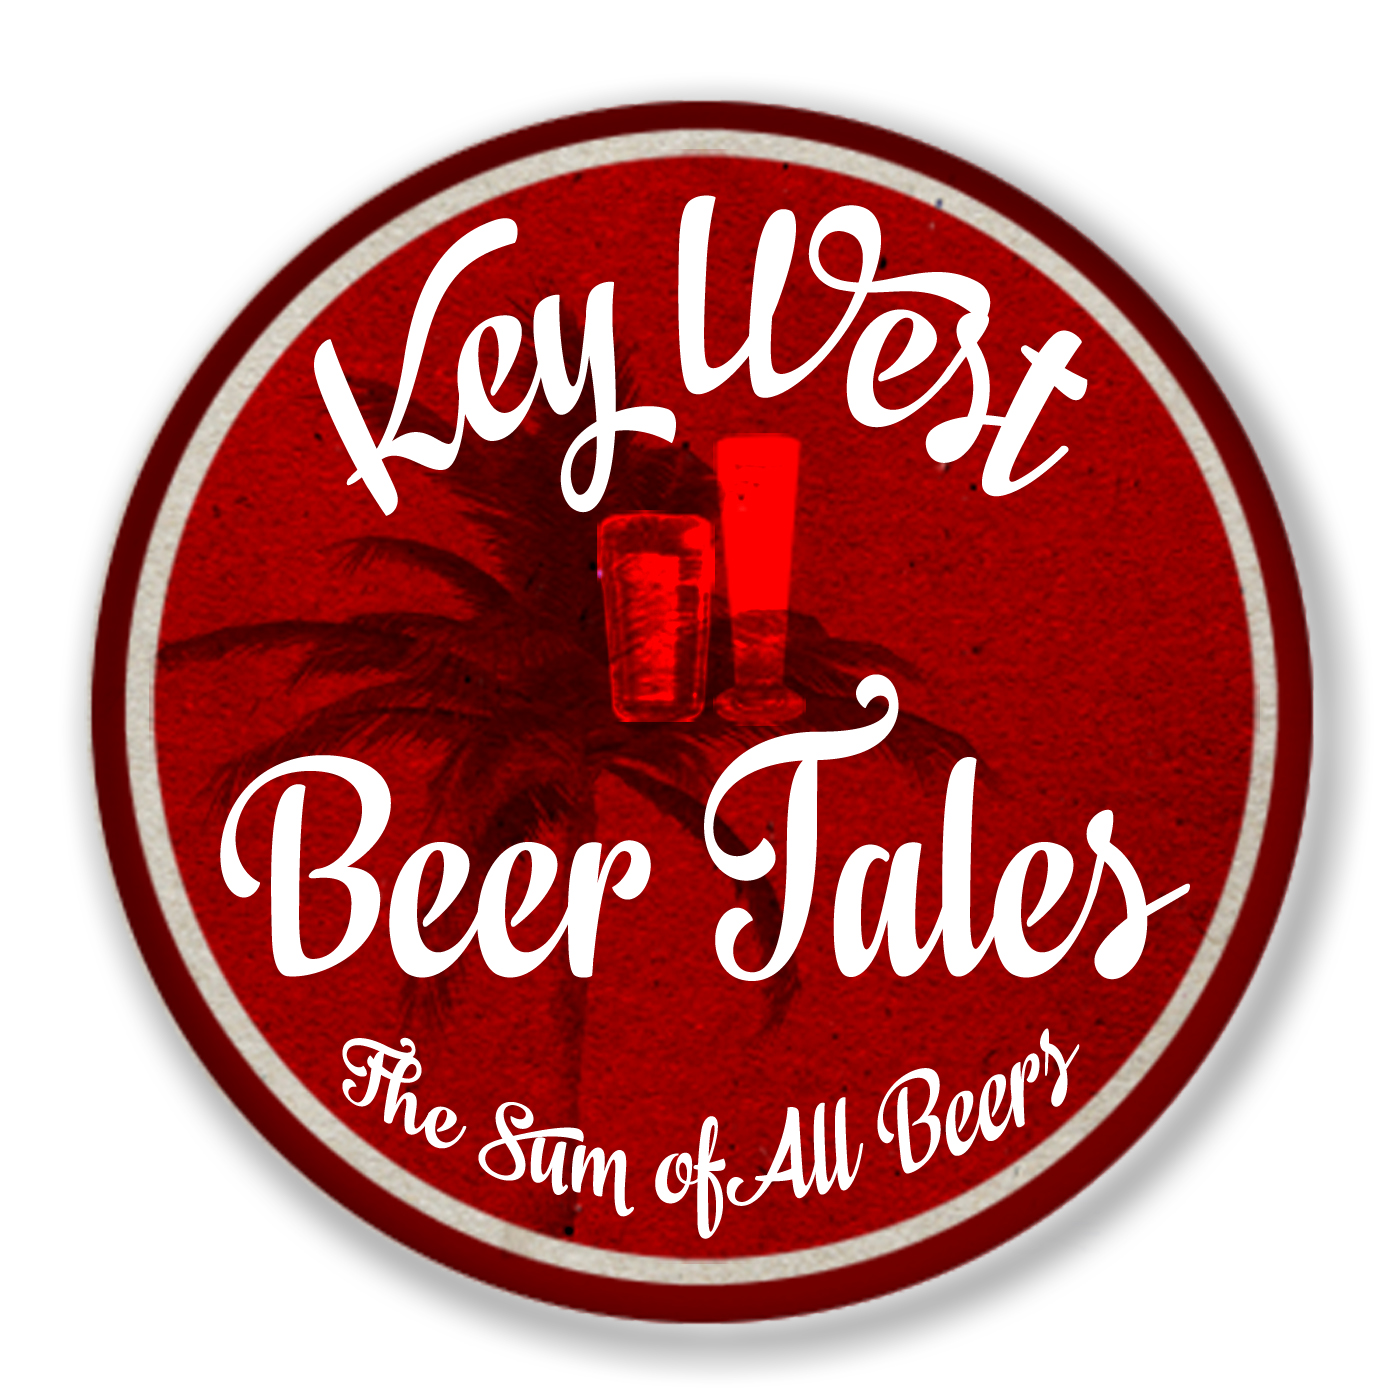 Key West Beer Tales: The Sum of All Beers